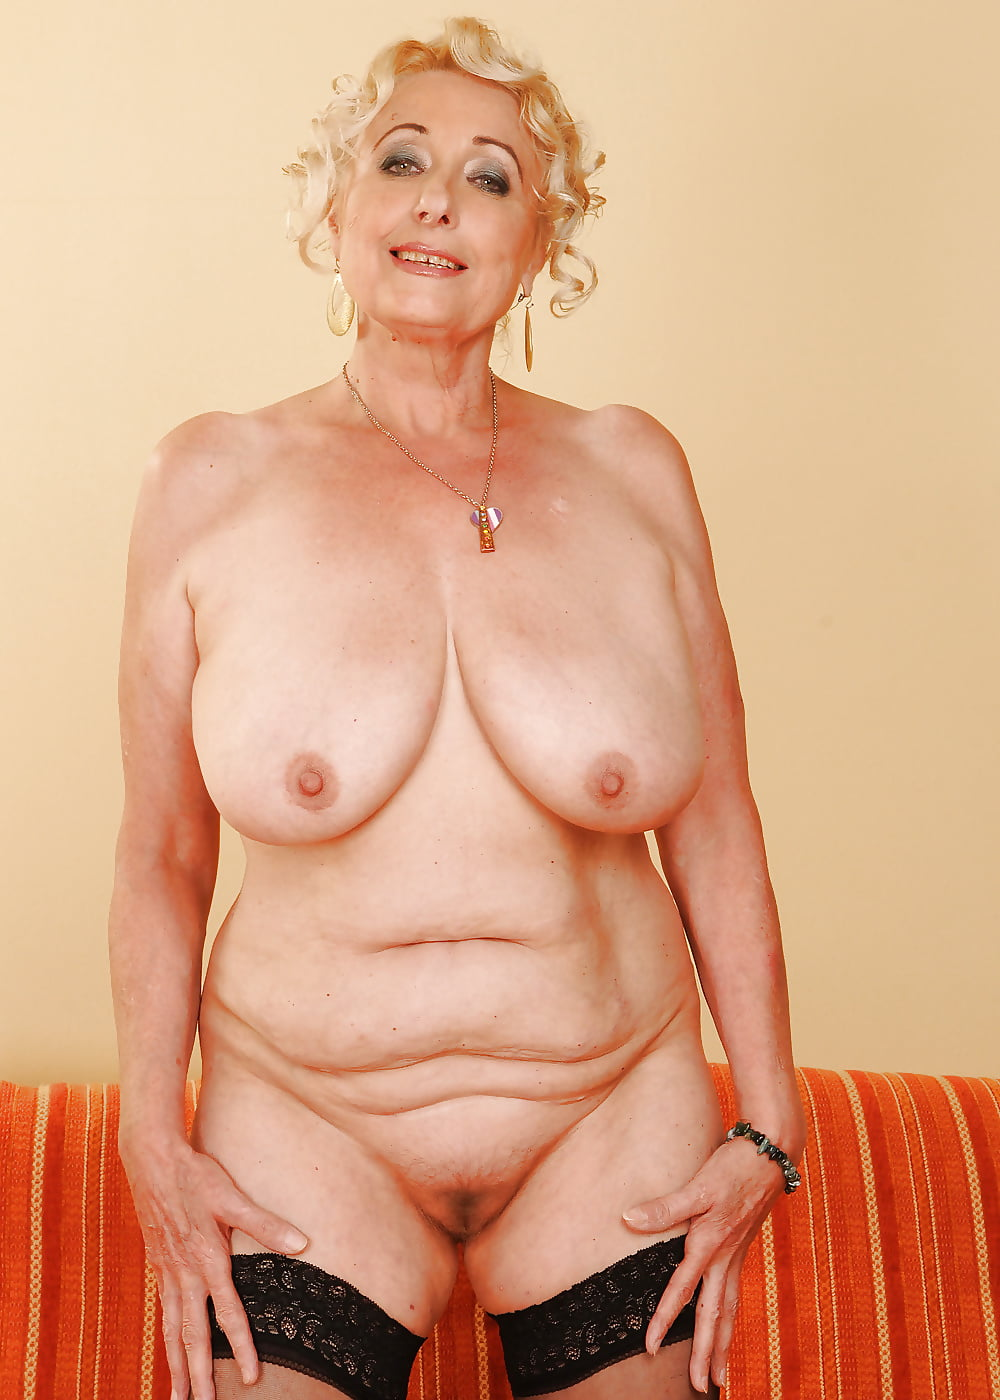 Having accidental slim old grandma nude